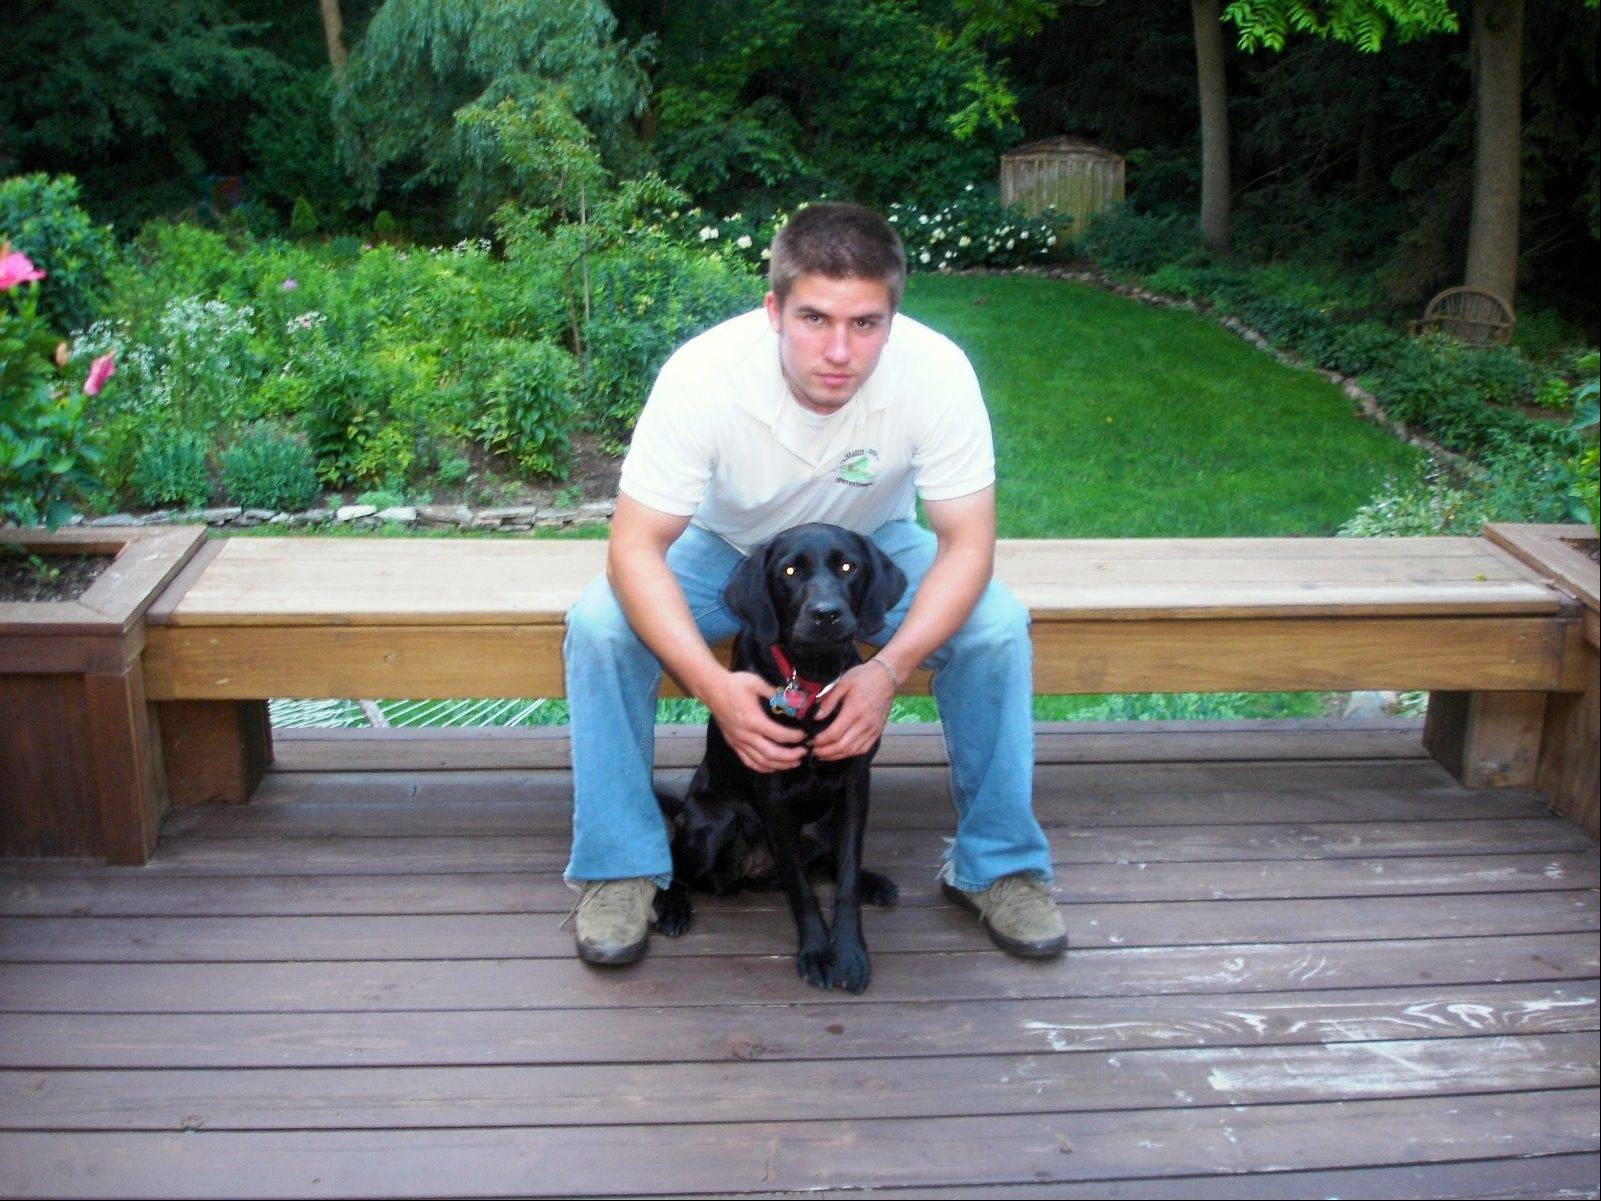 Paul Schmidt with his seizure response dog, Sara